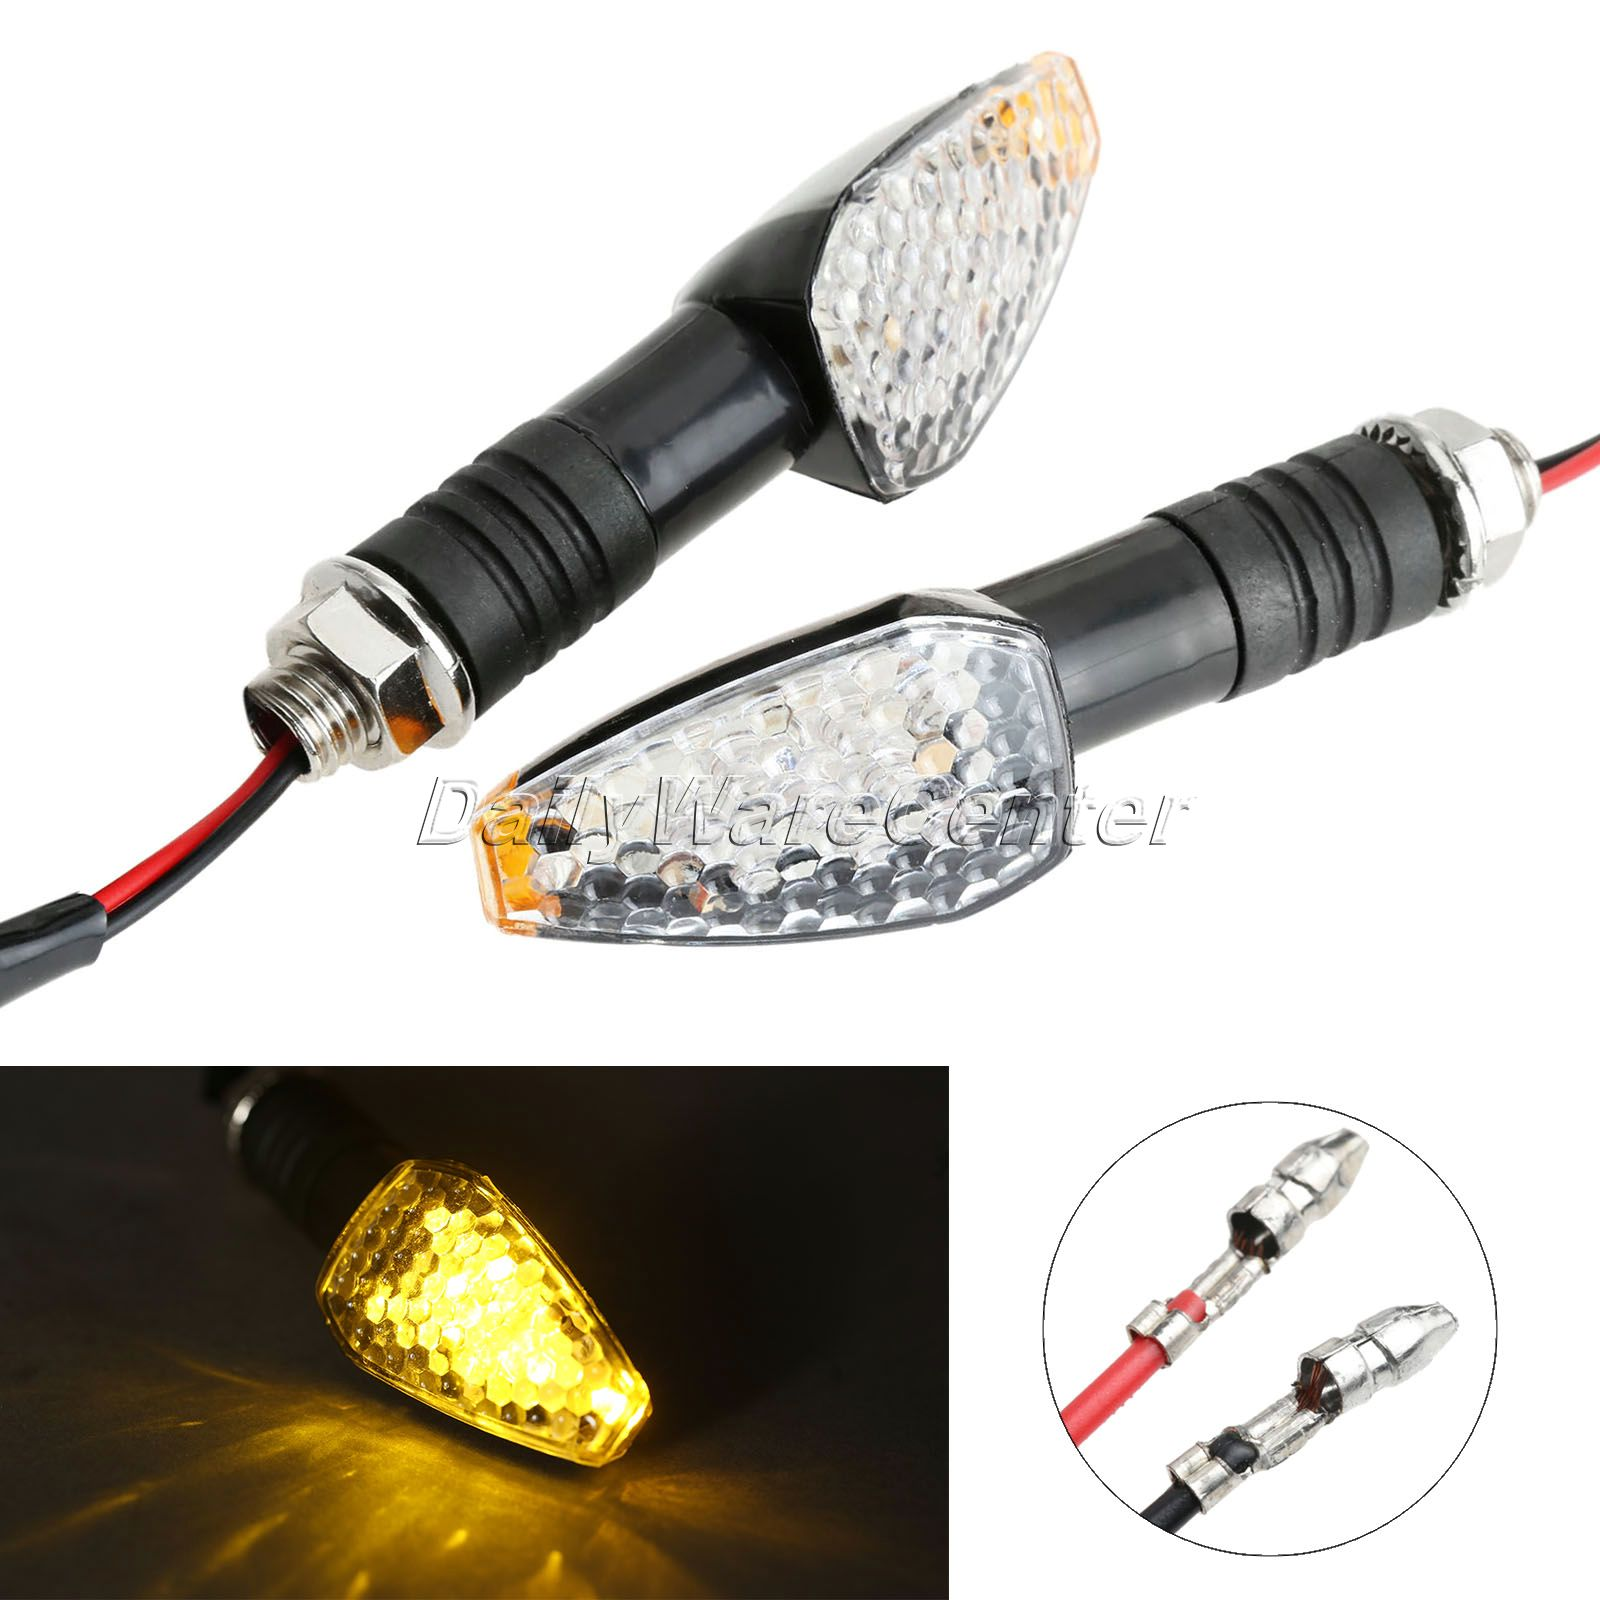 Mgoodoo 2pcs Universal Motorcycle Led Turn Singal Lights Lamp Motorbike Turn Light Indicators Flashers Blinker Amber Light Bulb